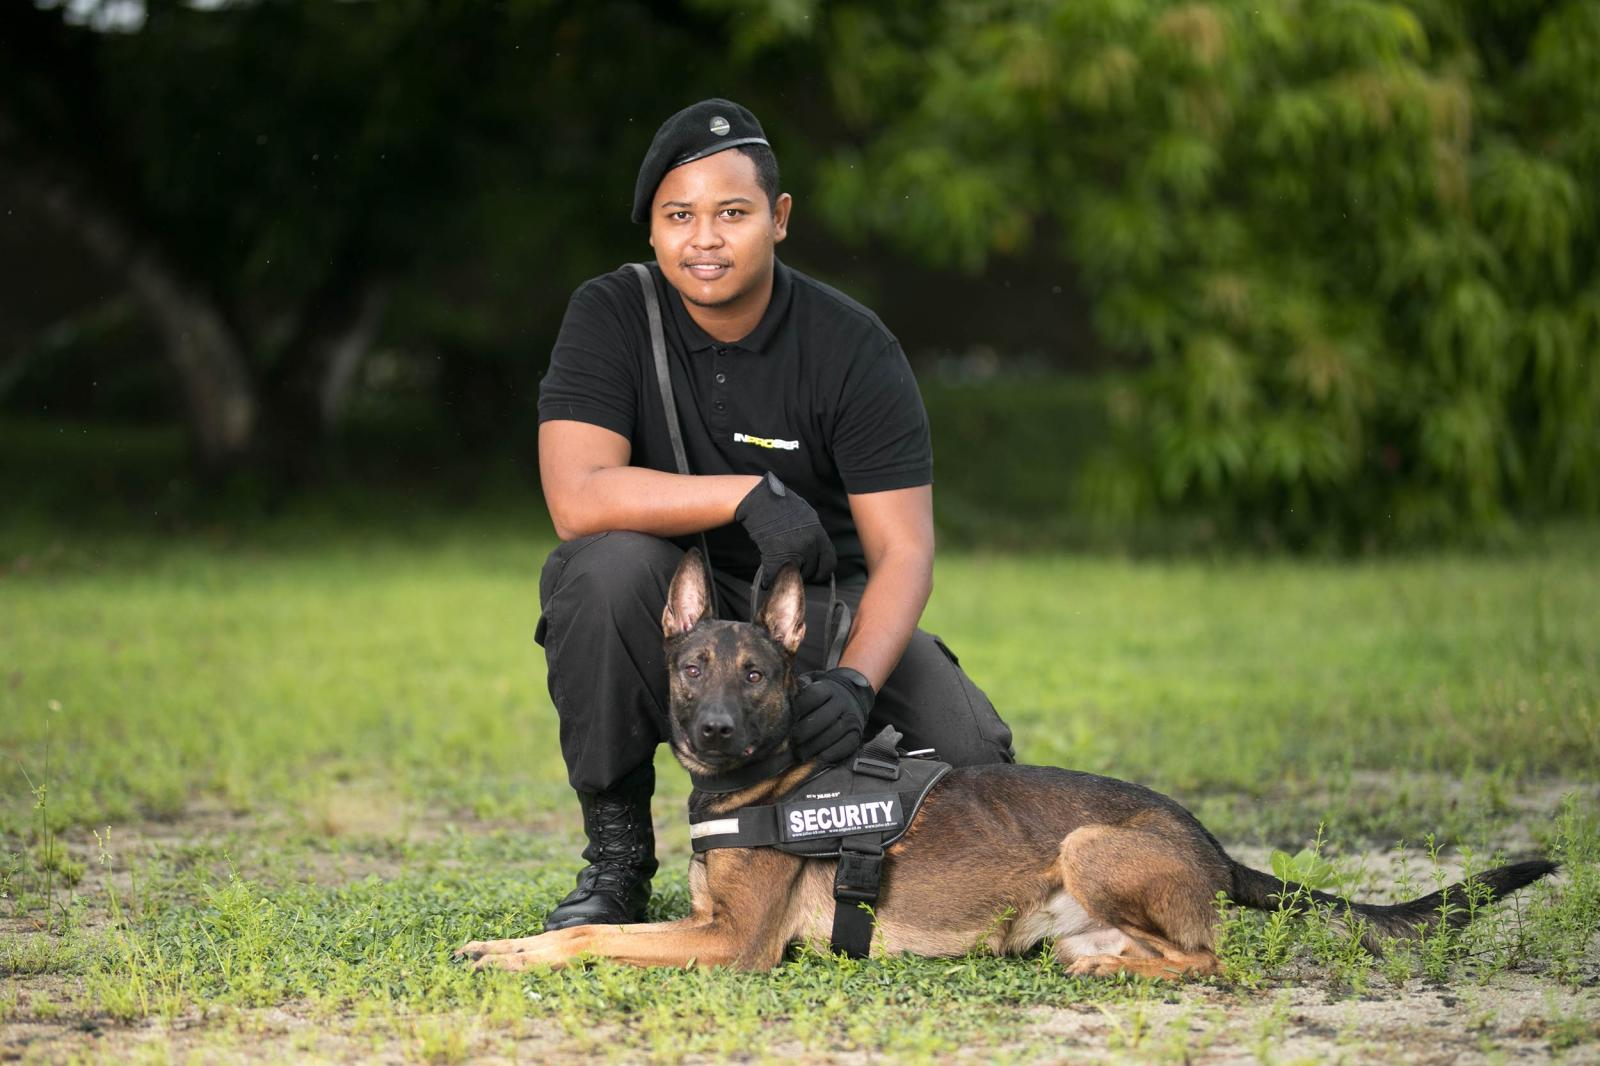 K9 Dog Security Services